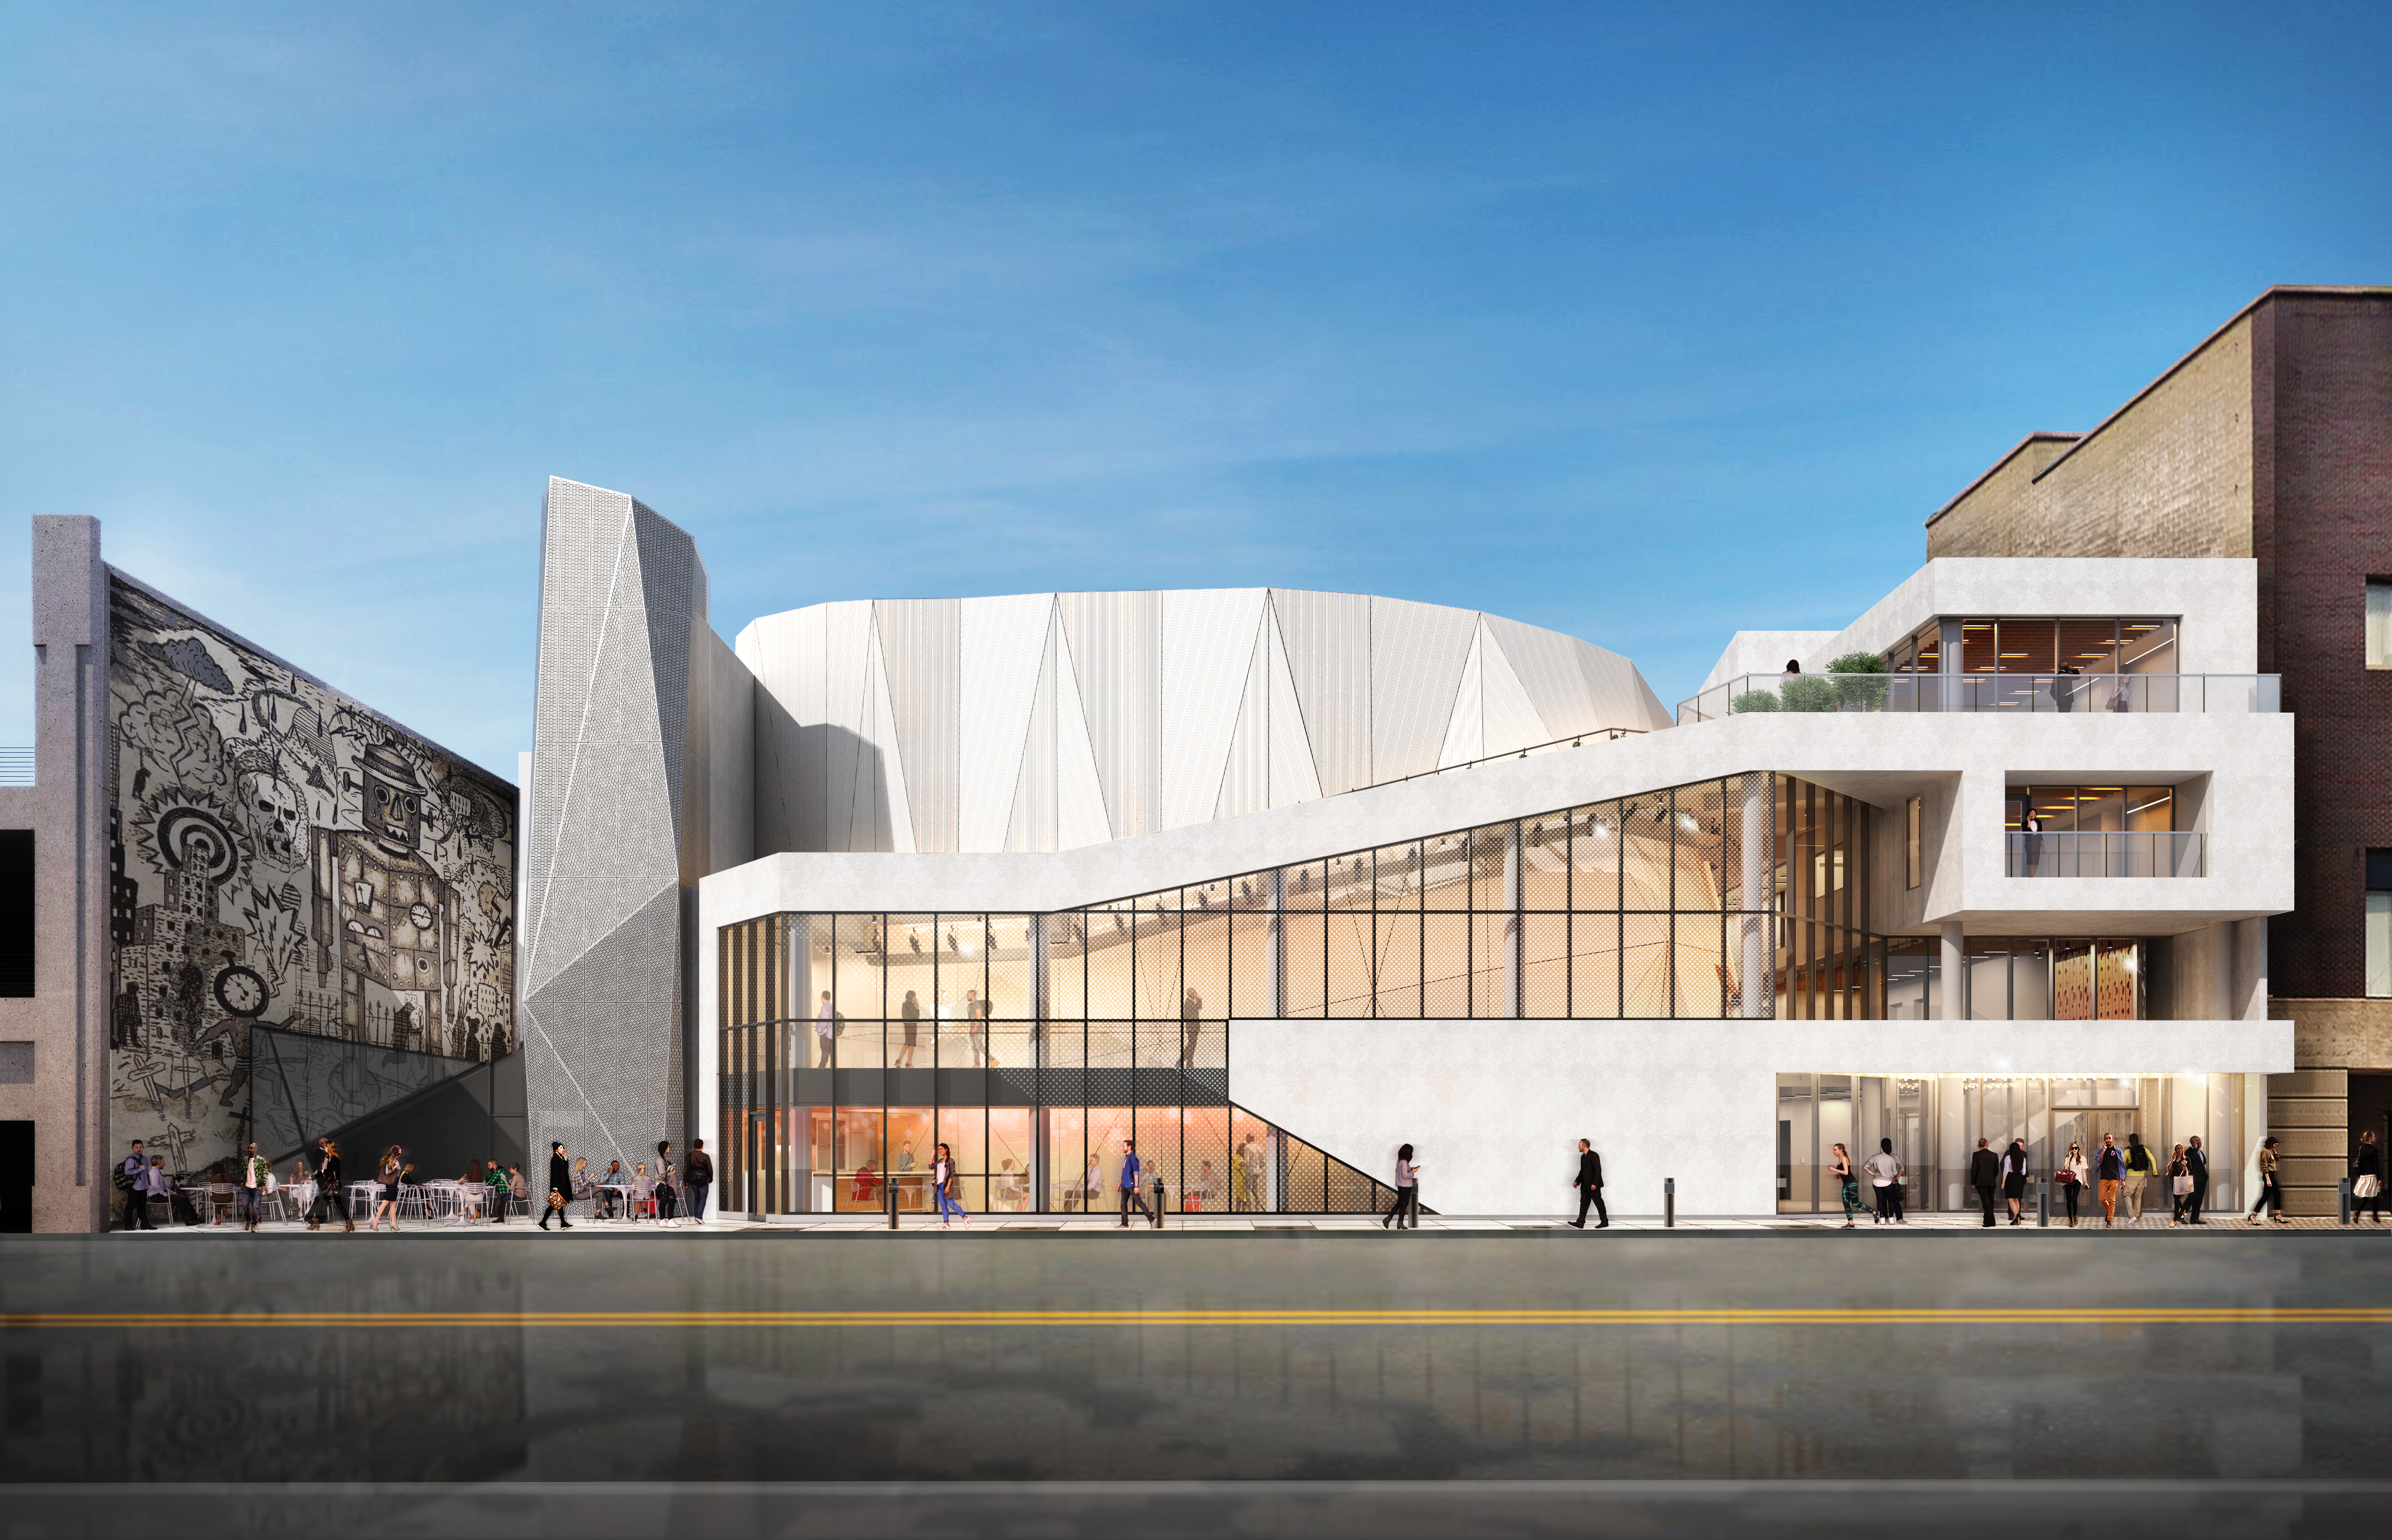 Steppenwolf expands theater with dramatic, geometric design from Smith + Gill